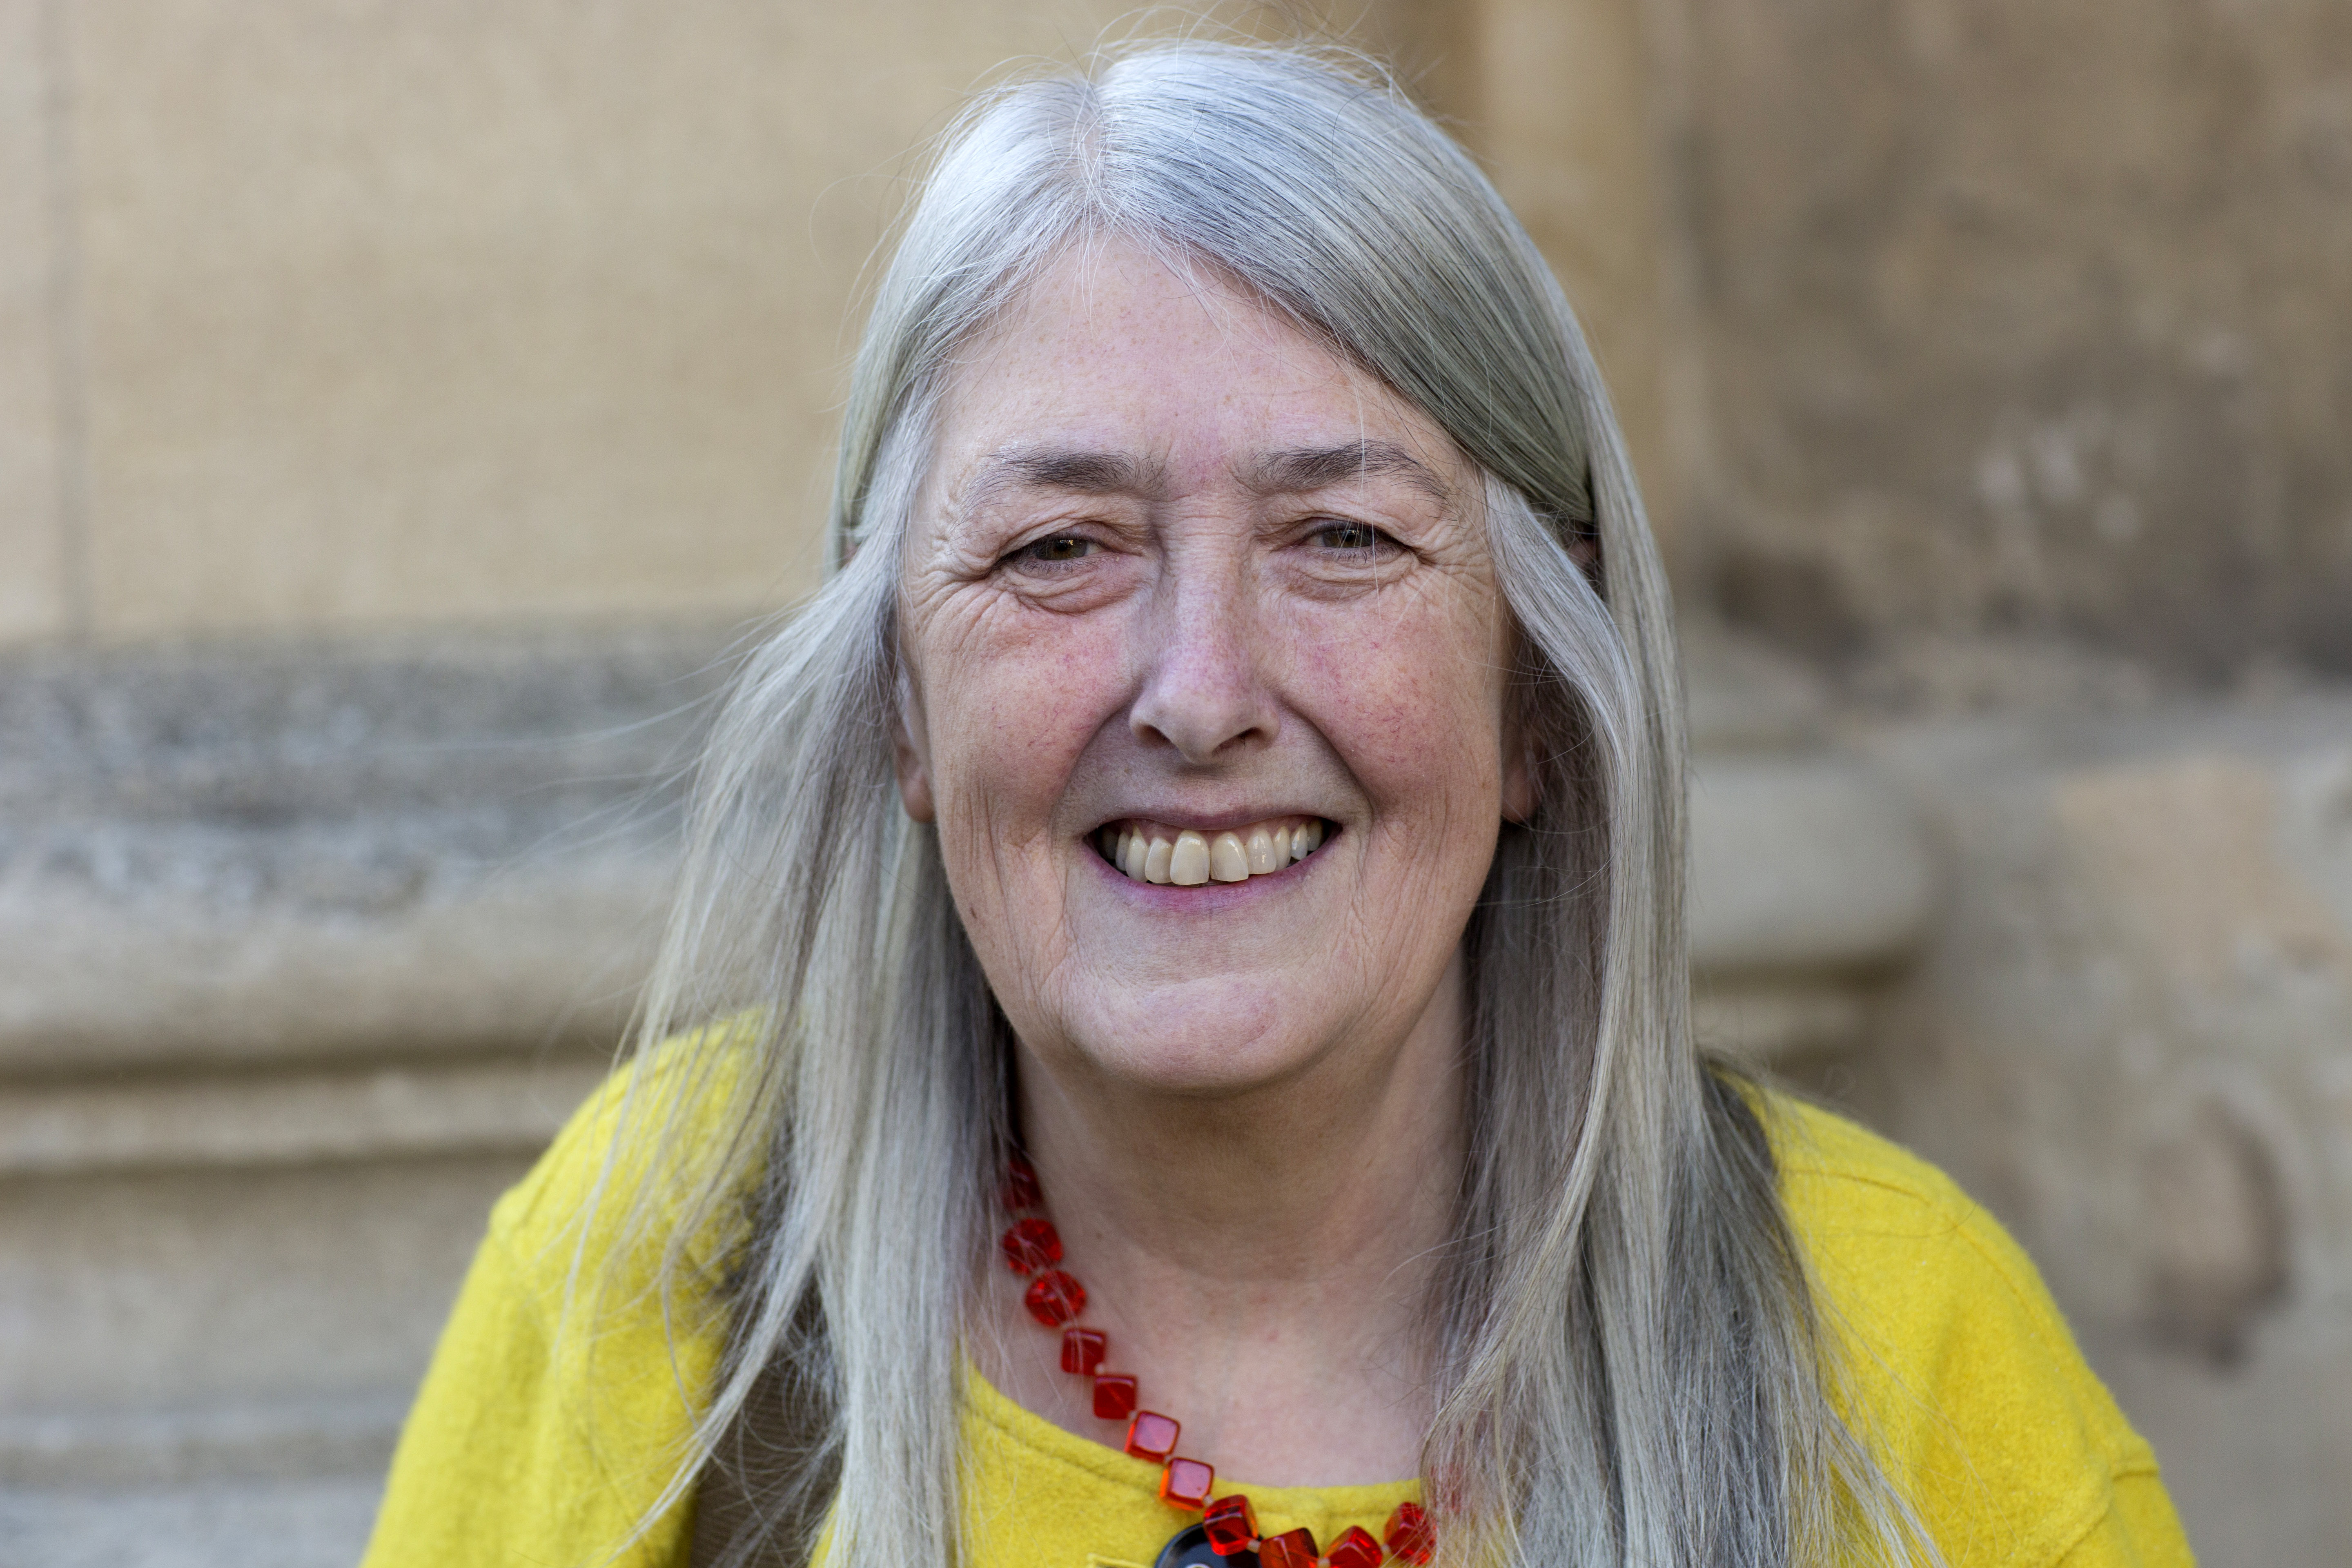 Professor Mary Beard, classicist and writer, at the FT Weekend Oxford Literary Festival on April 5, 2016 in Oxford, England.